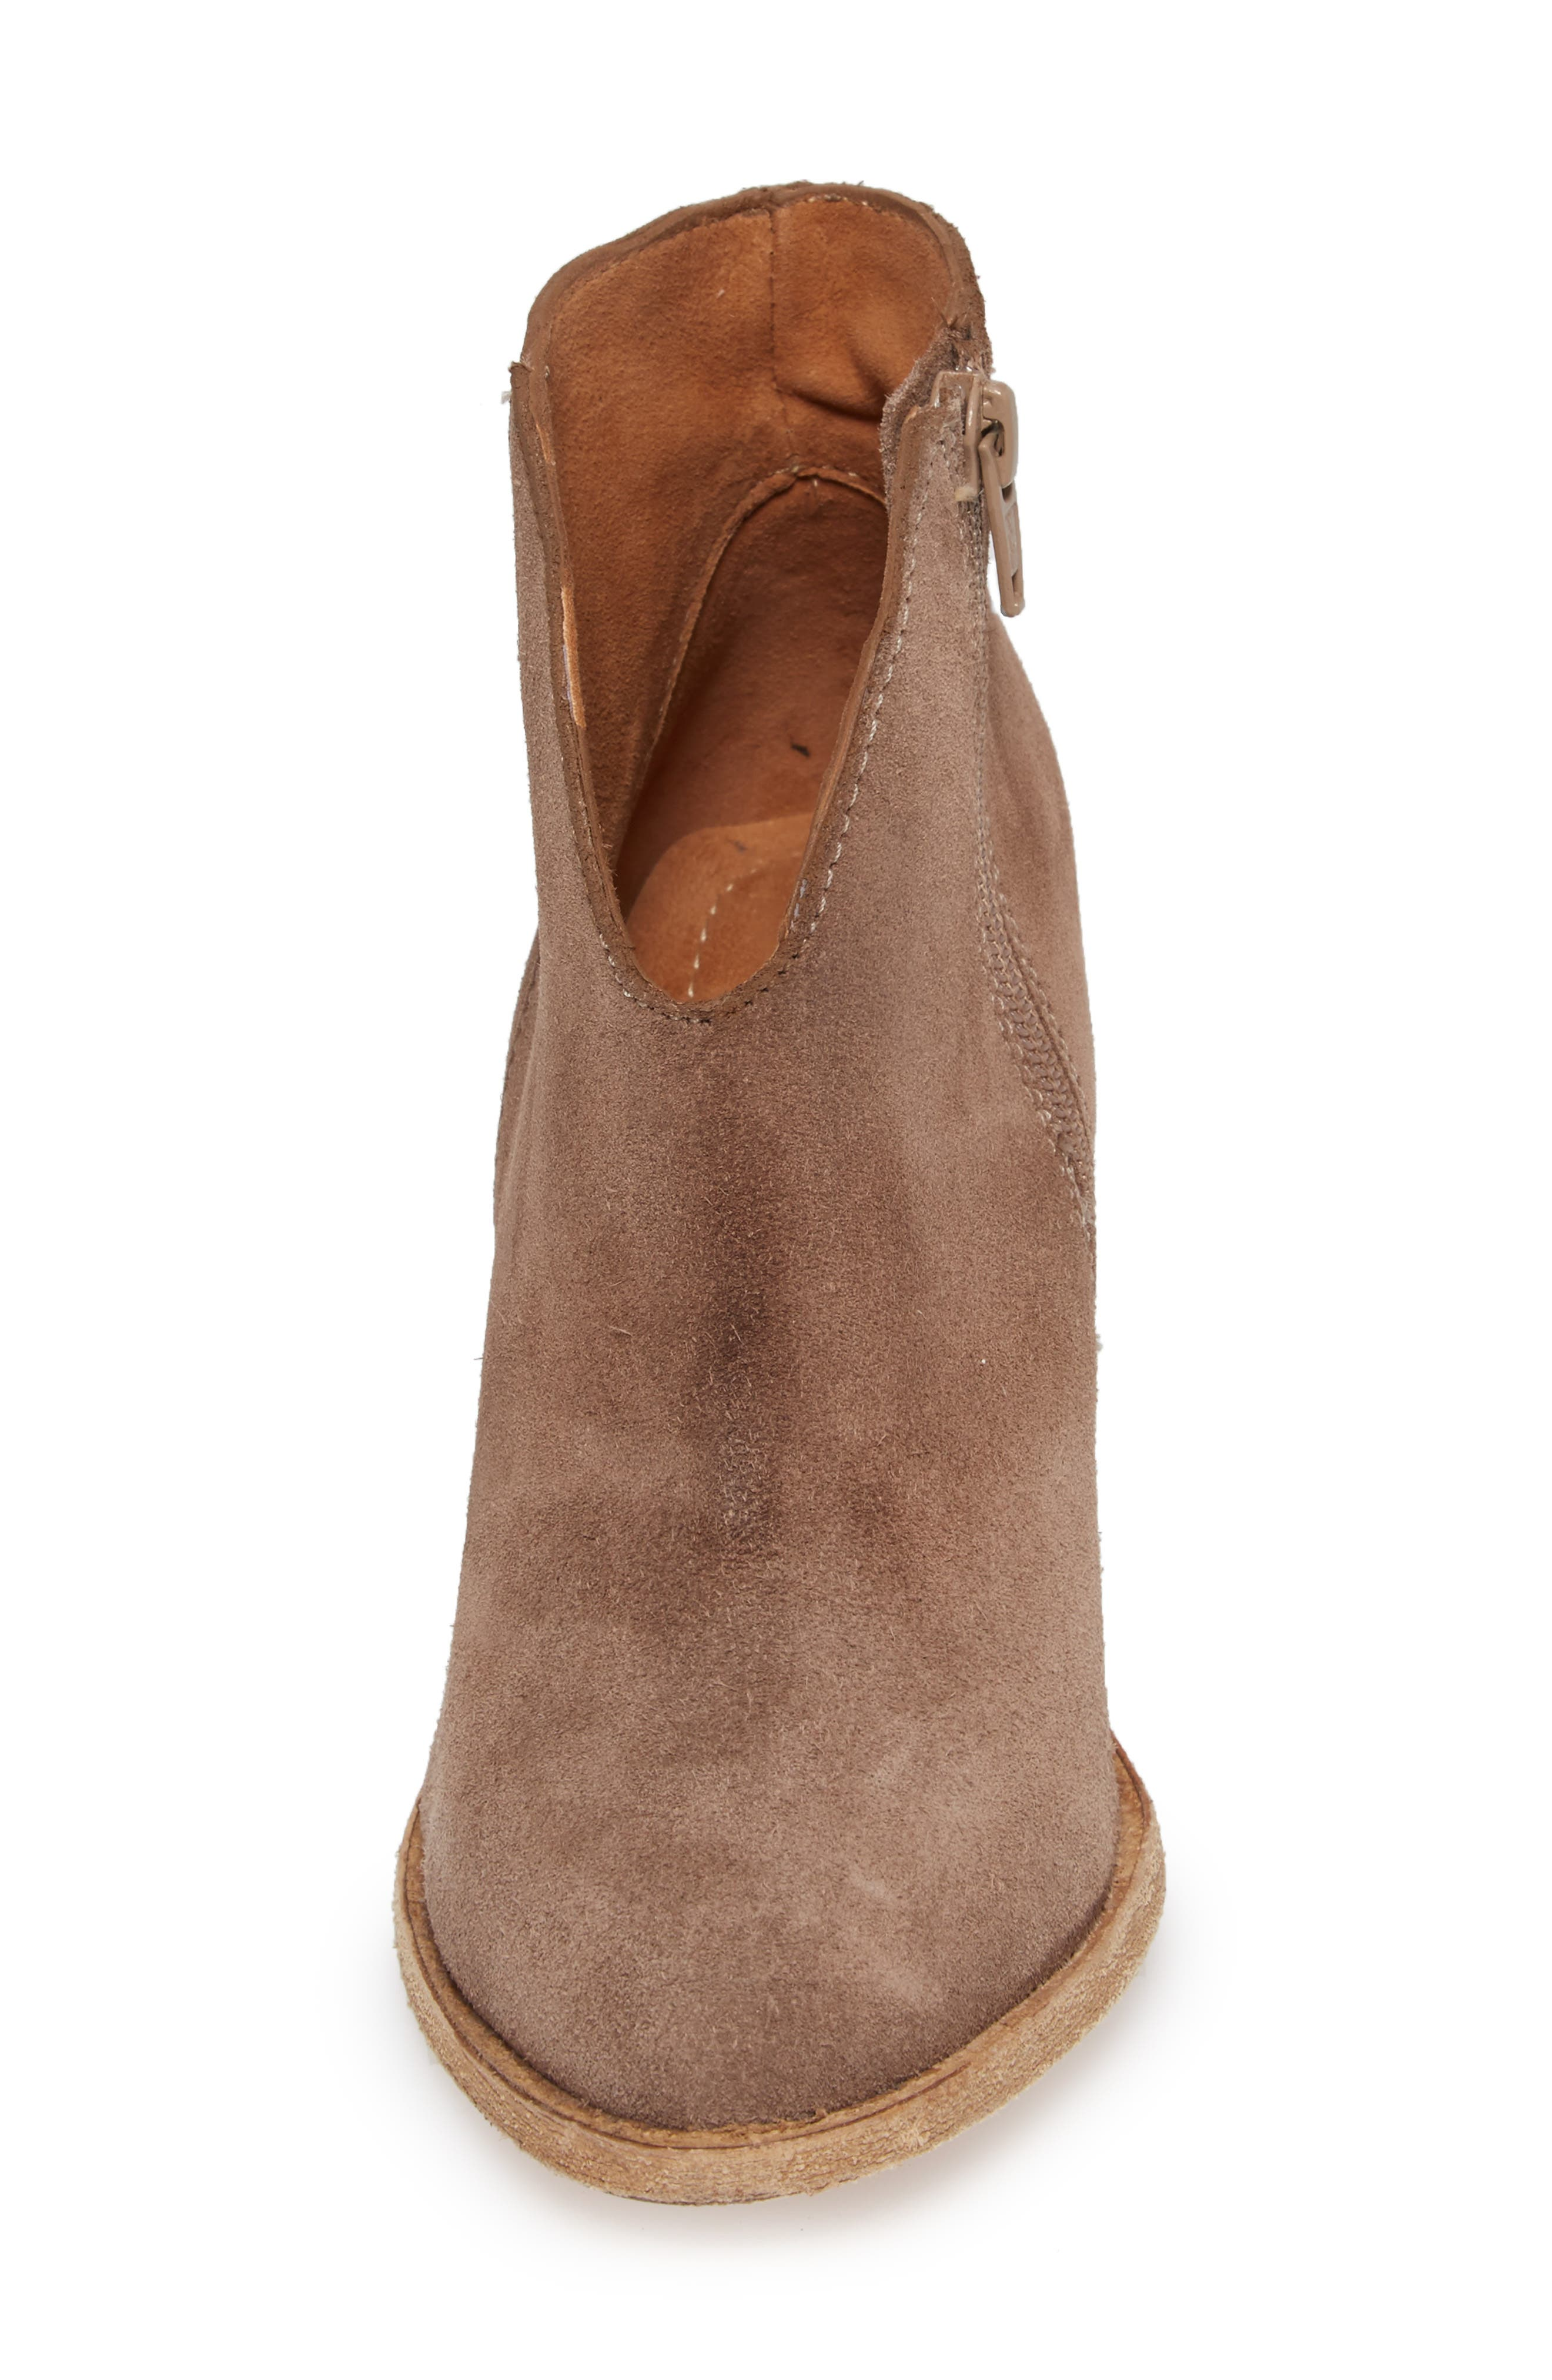 Kamet Bootie,                             Alternate thumbnail 4, color,                             Taupe Oiled Suede